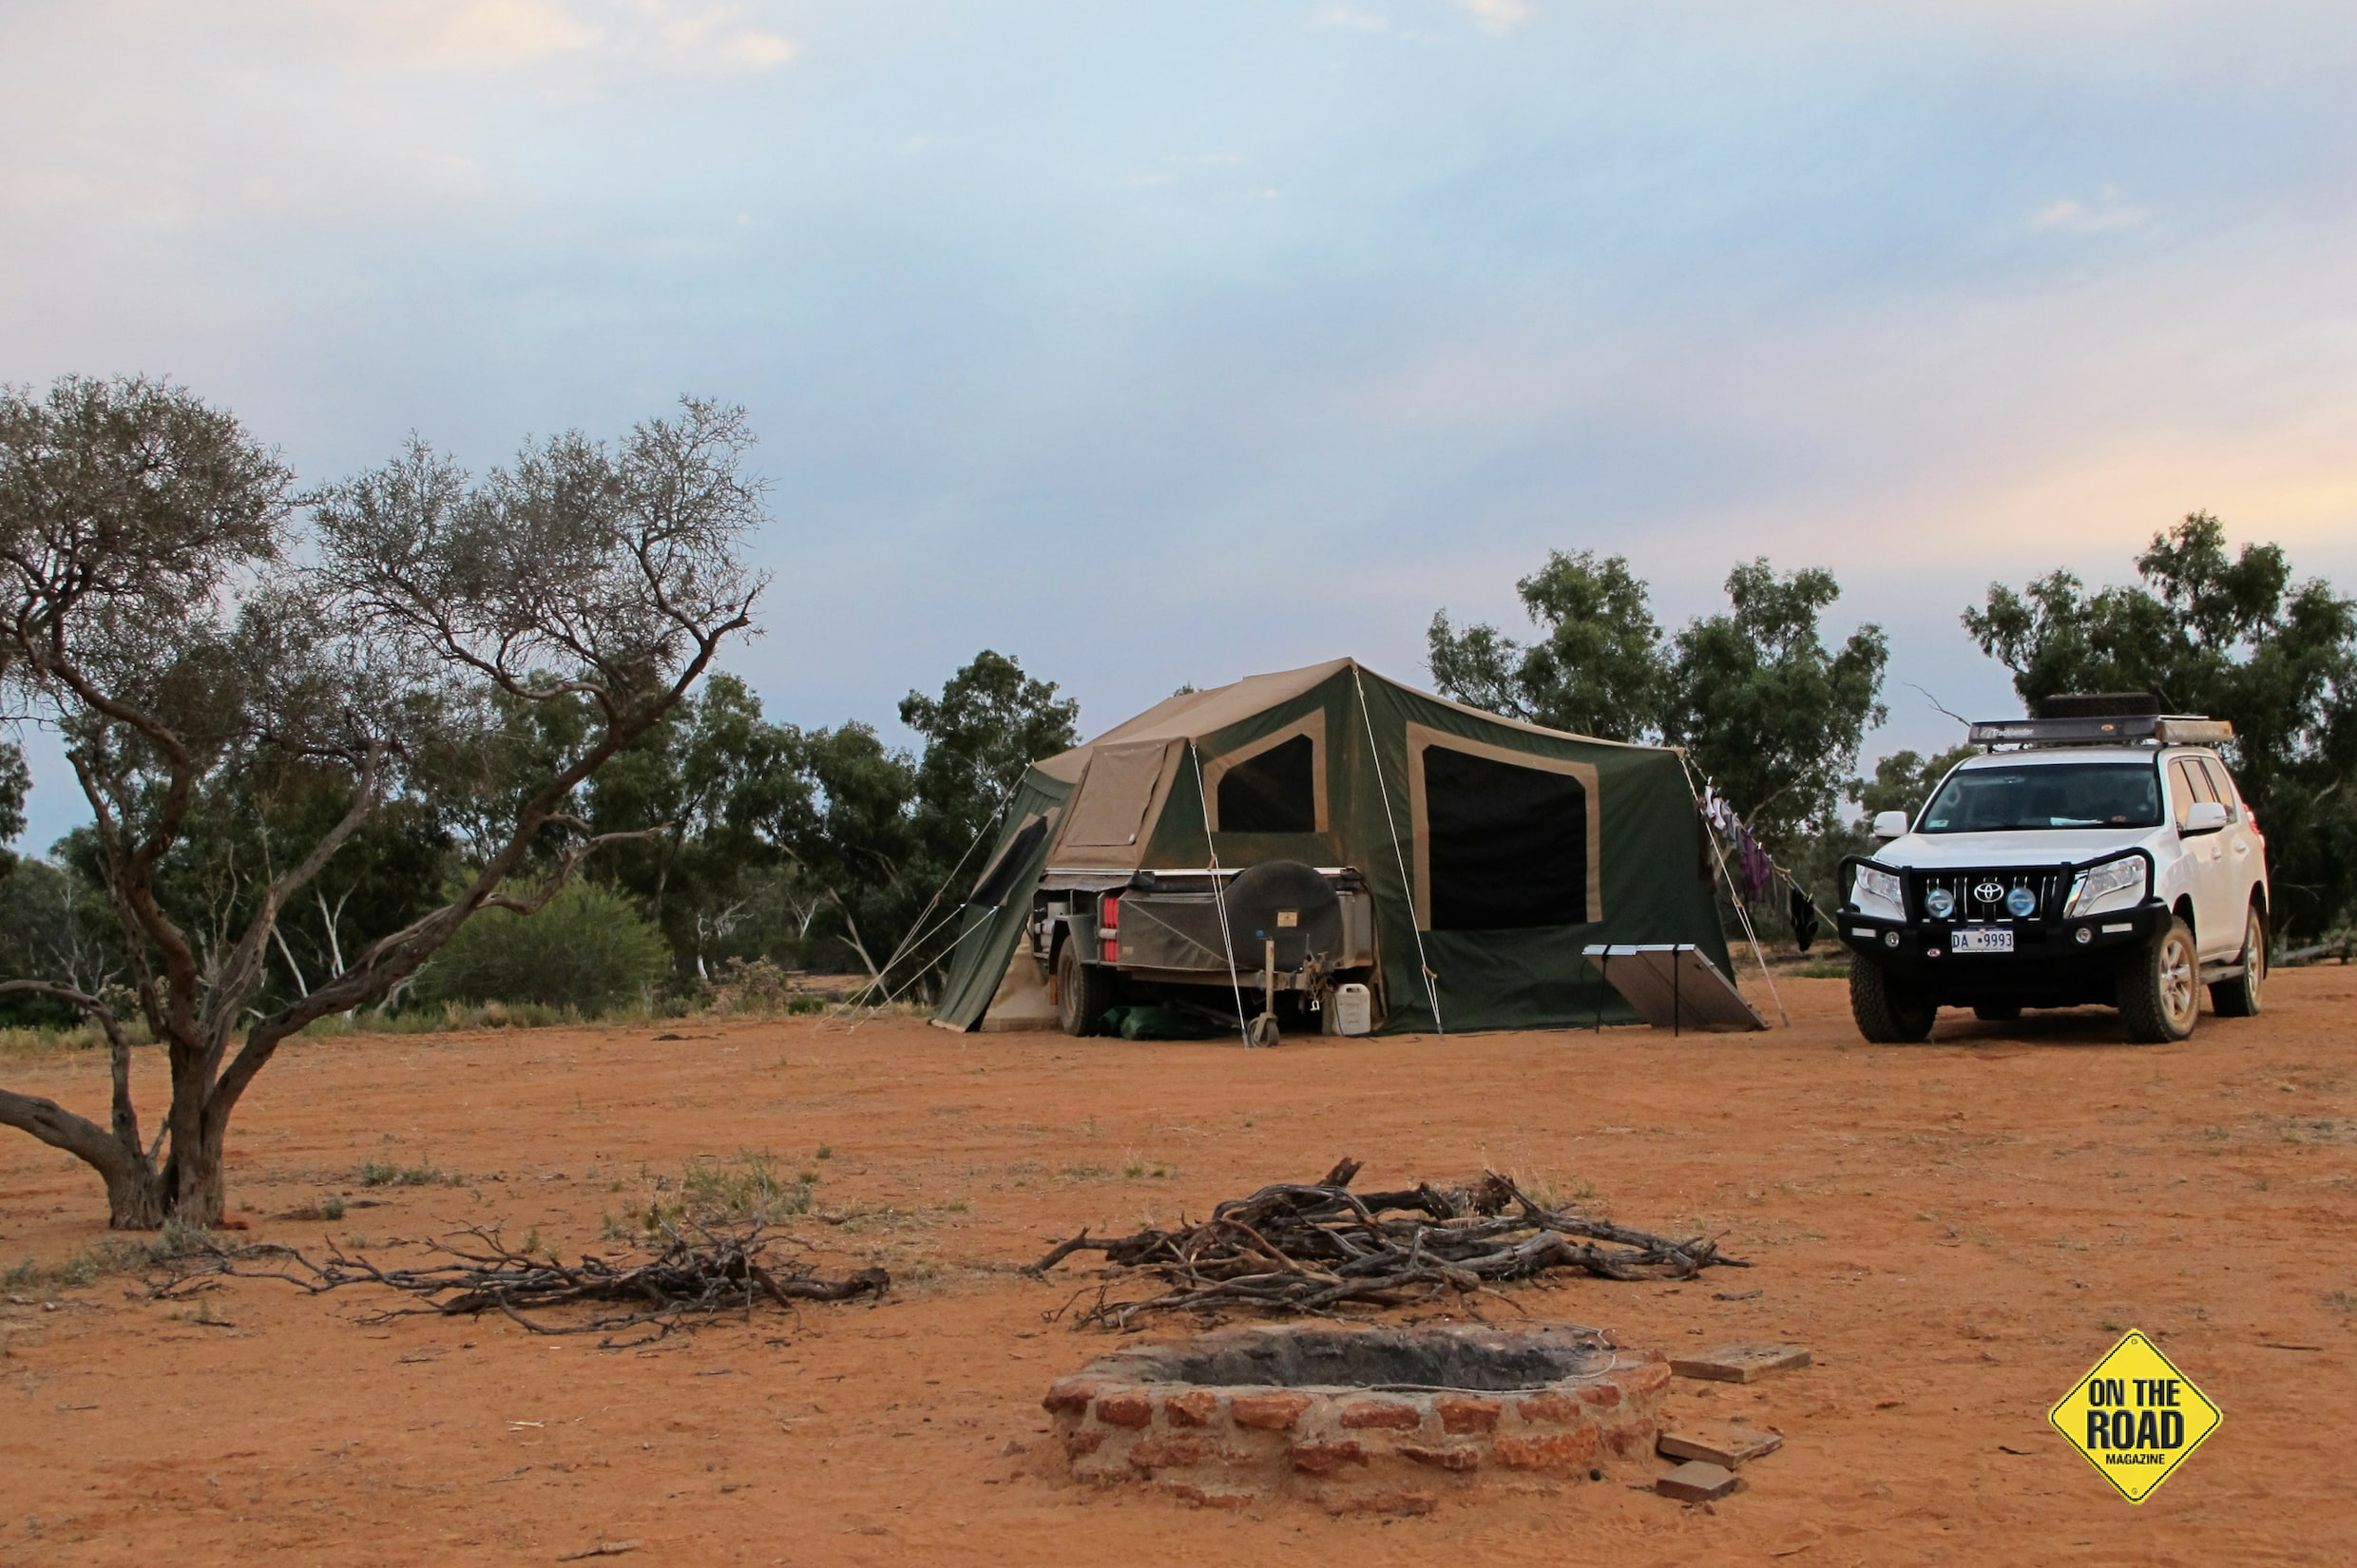 River side camping at Wooleen Station with privacy and space